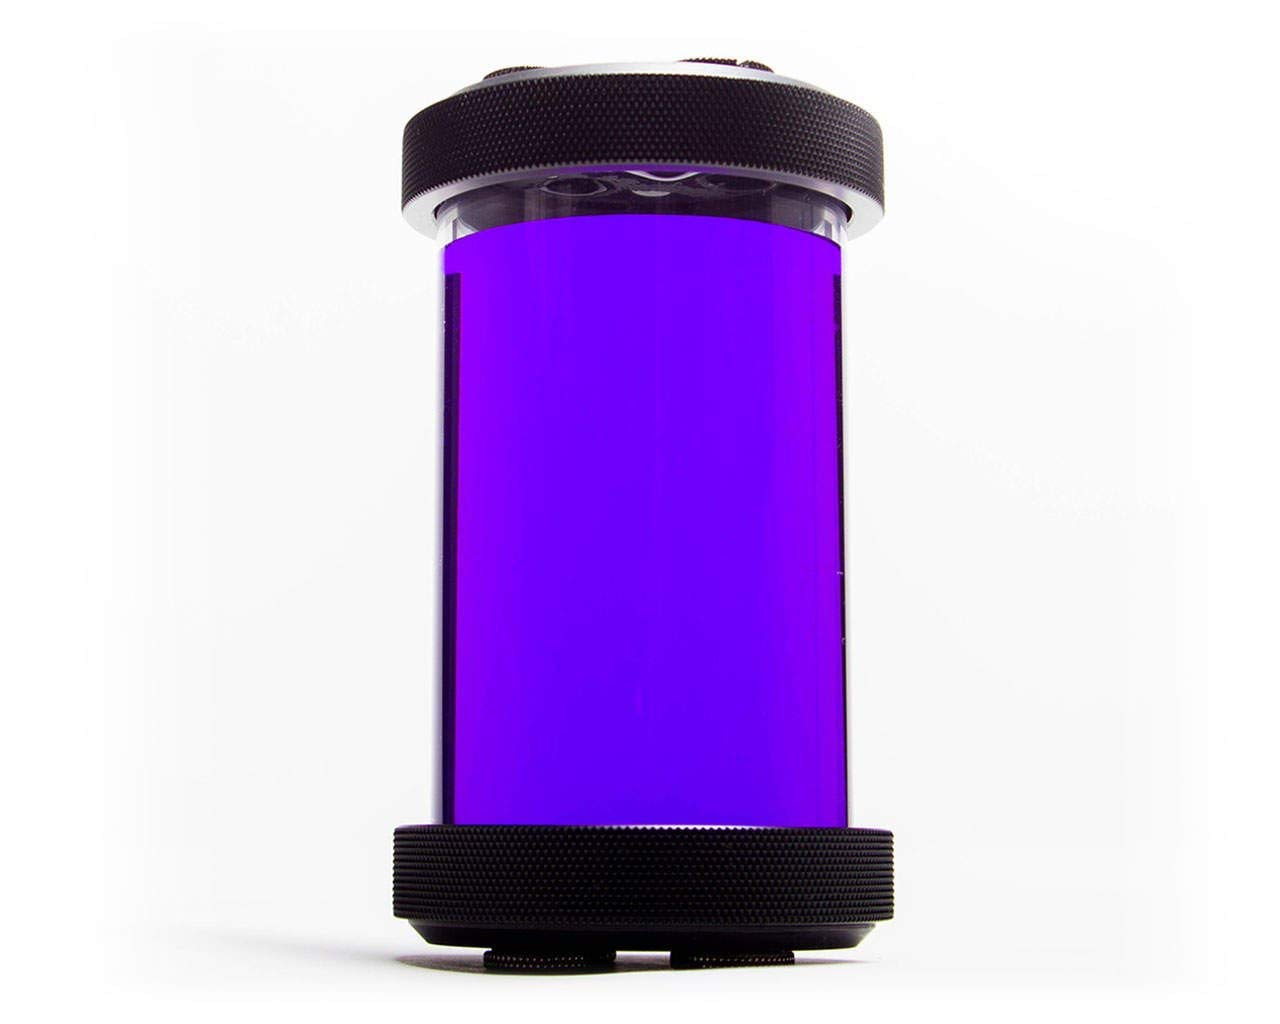 PRIMOCHILL Ice - Low-Conductive Coolant (32 oz.) - UV Purple